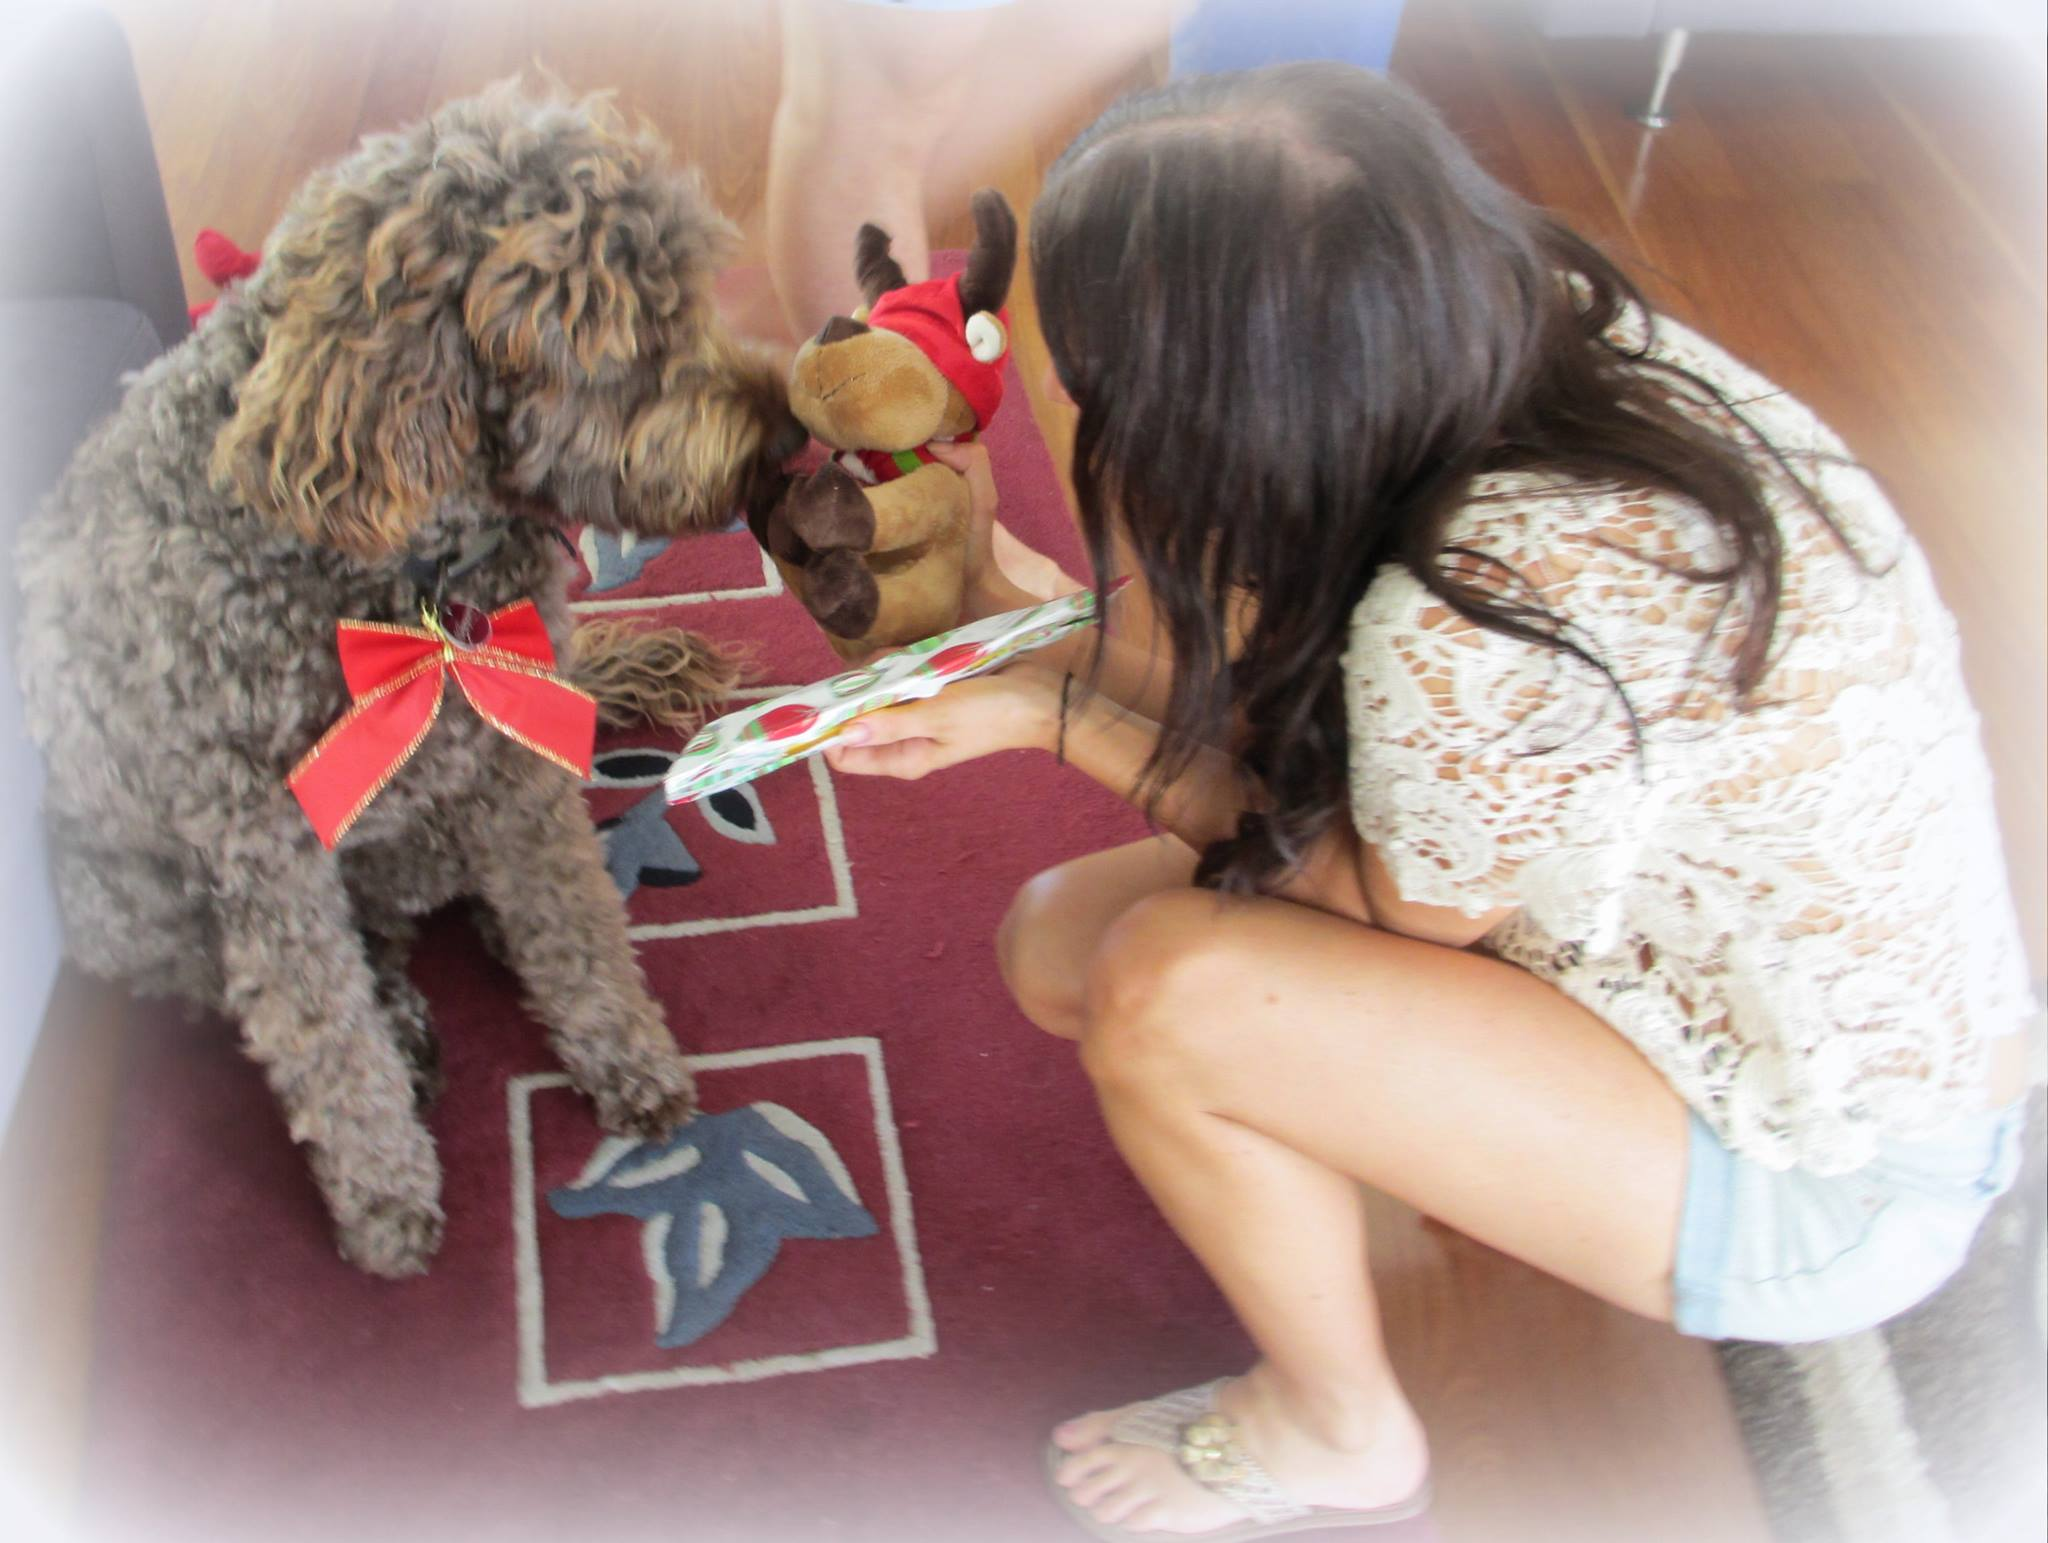 A photo of my sister giving our dog, Cooper, a present in 2011 - the last Christmas we shared together.